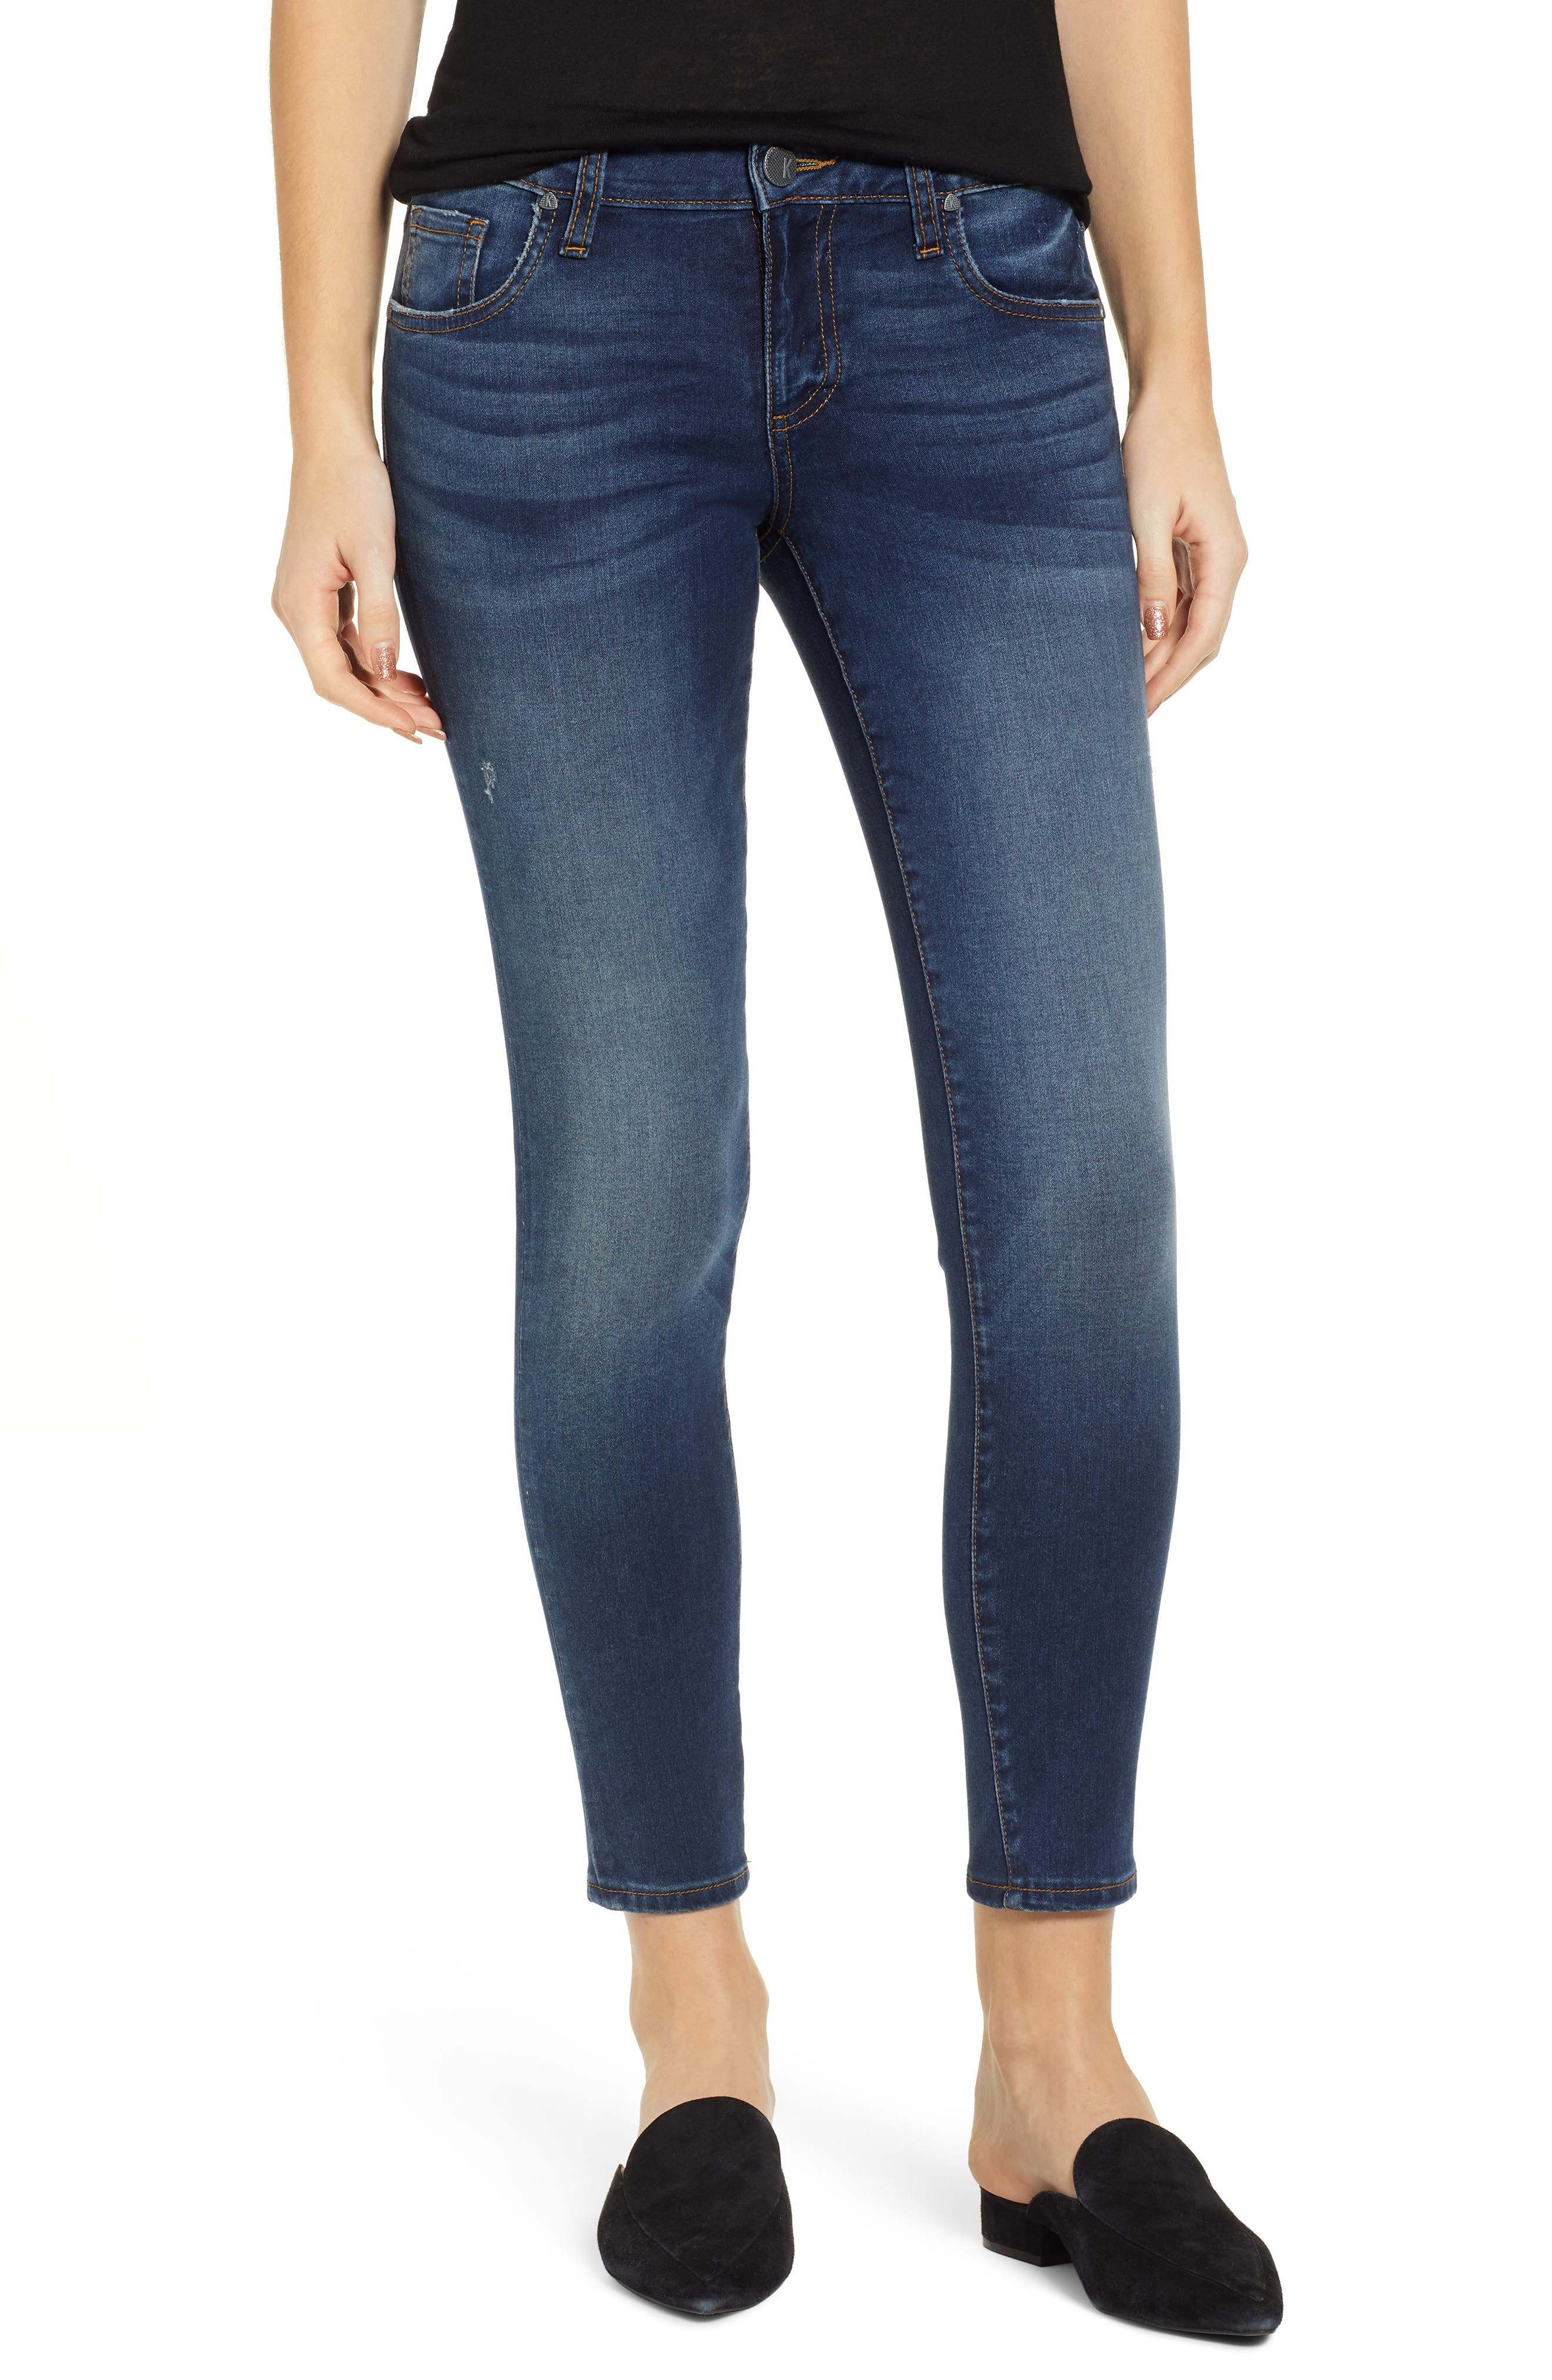 KUT FROM THE KLOTH, KUT From The Koth Donna Ankle Skinny Jeans, Main thumbnail 1, color, 400